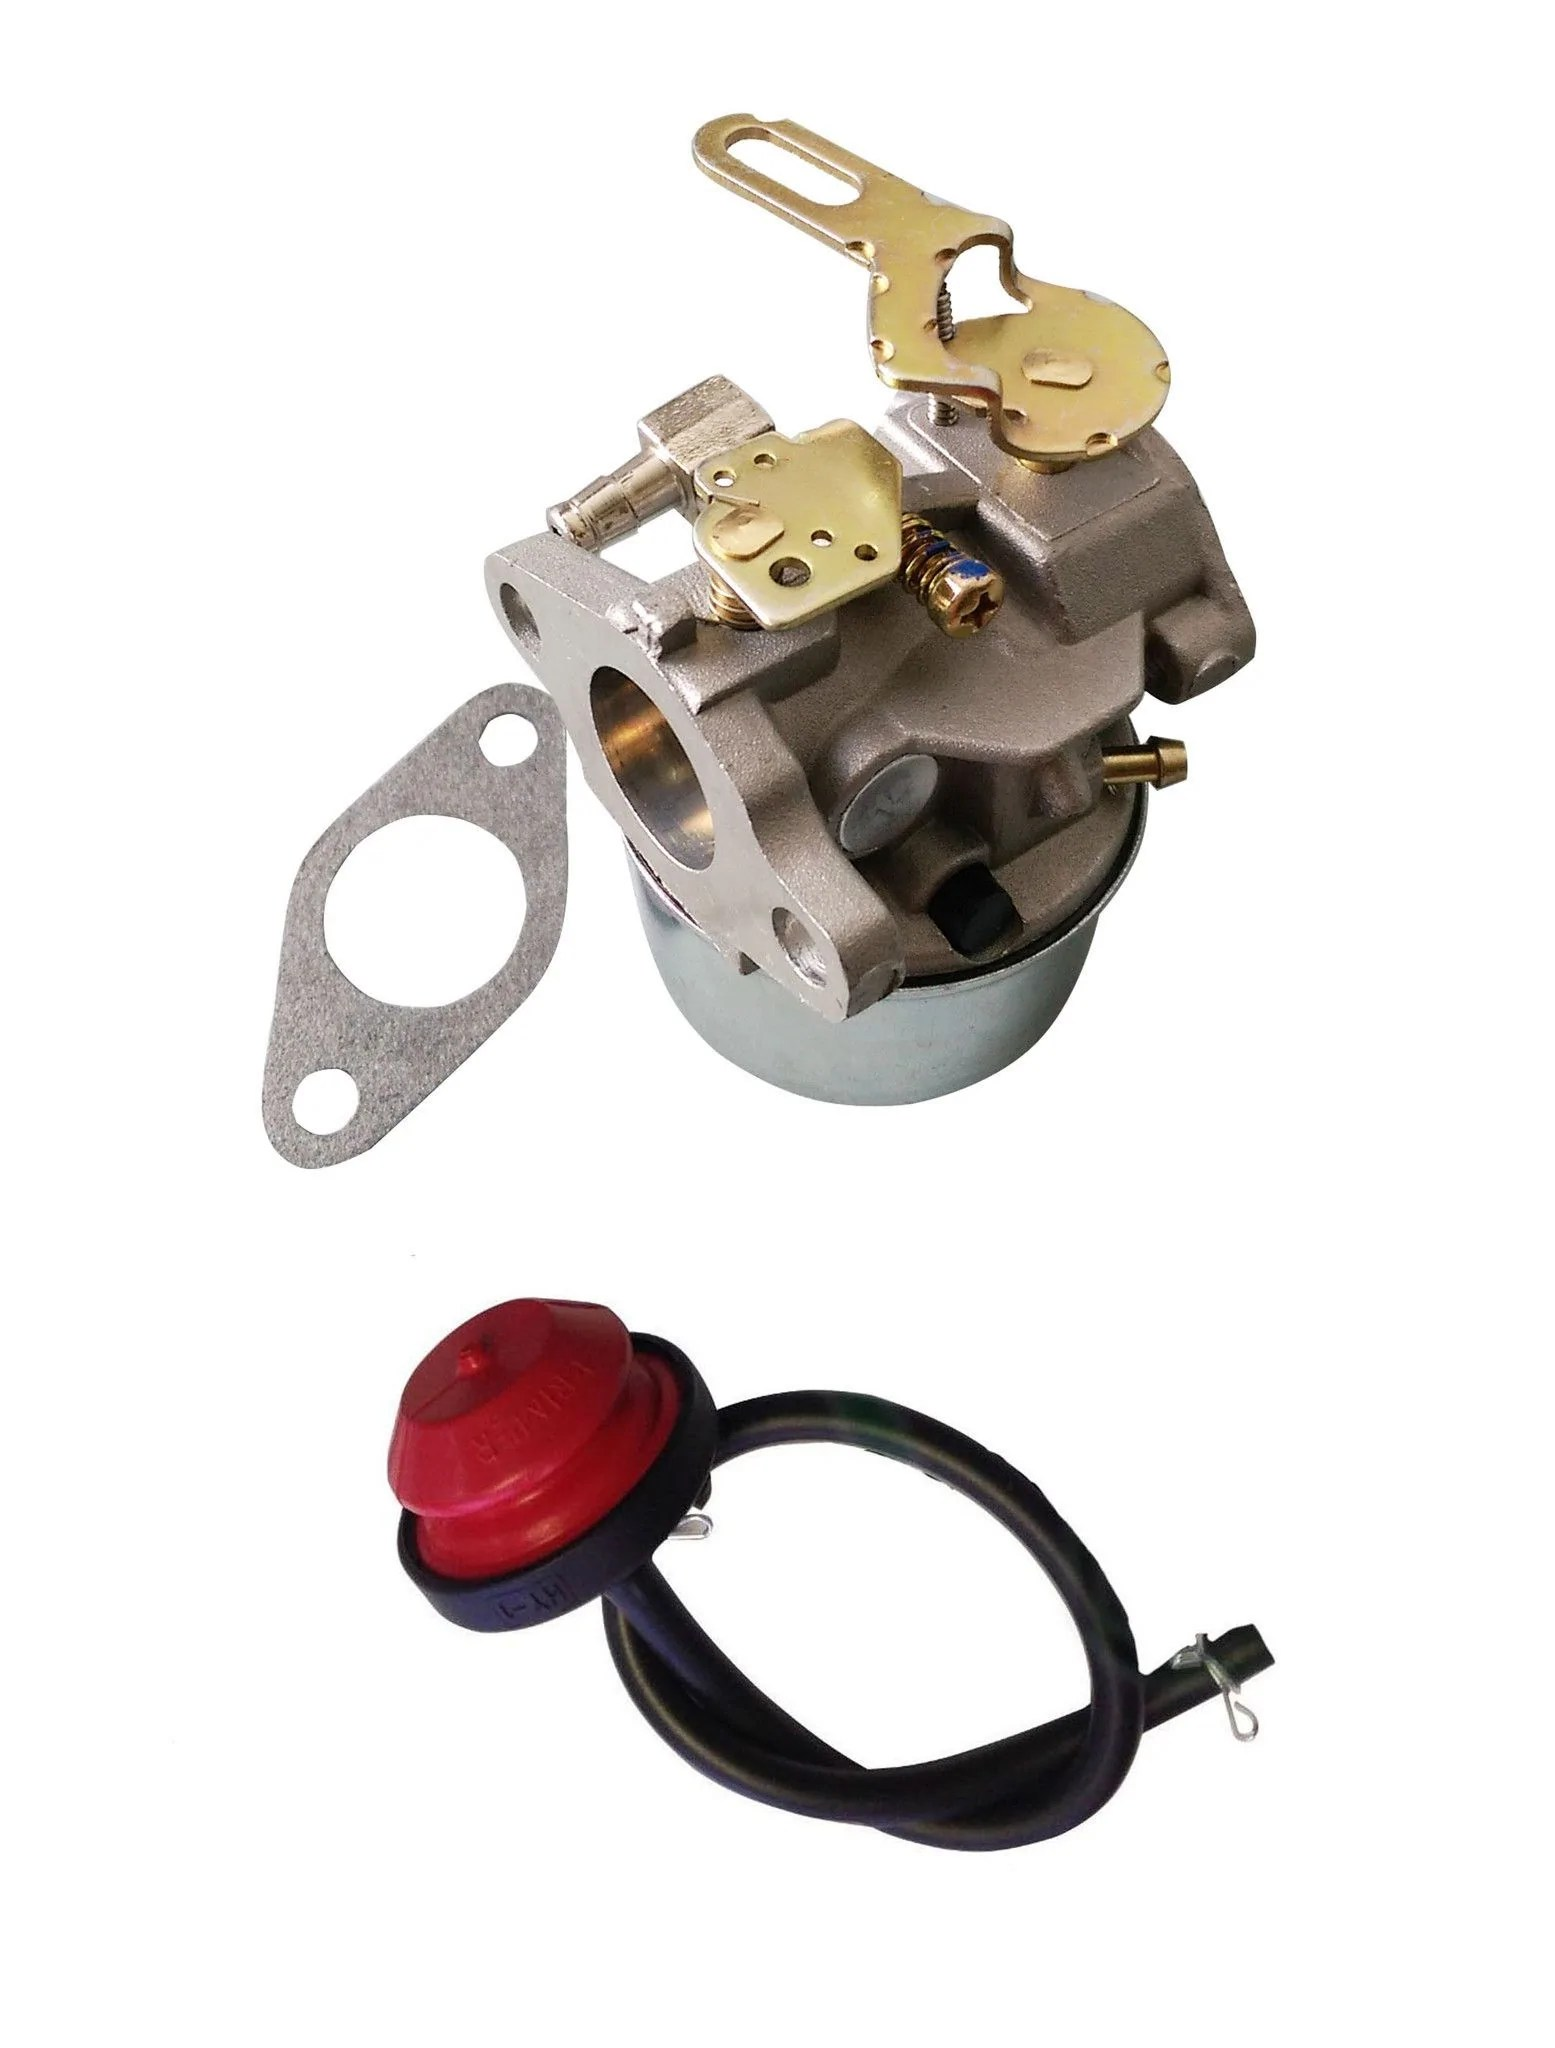 small resolution of everest carburetor with primer bulb fits toro snowblower usa everest parts supplies